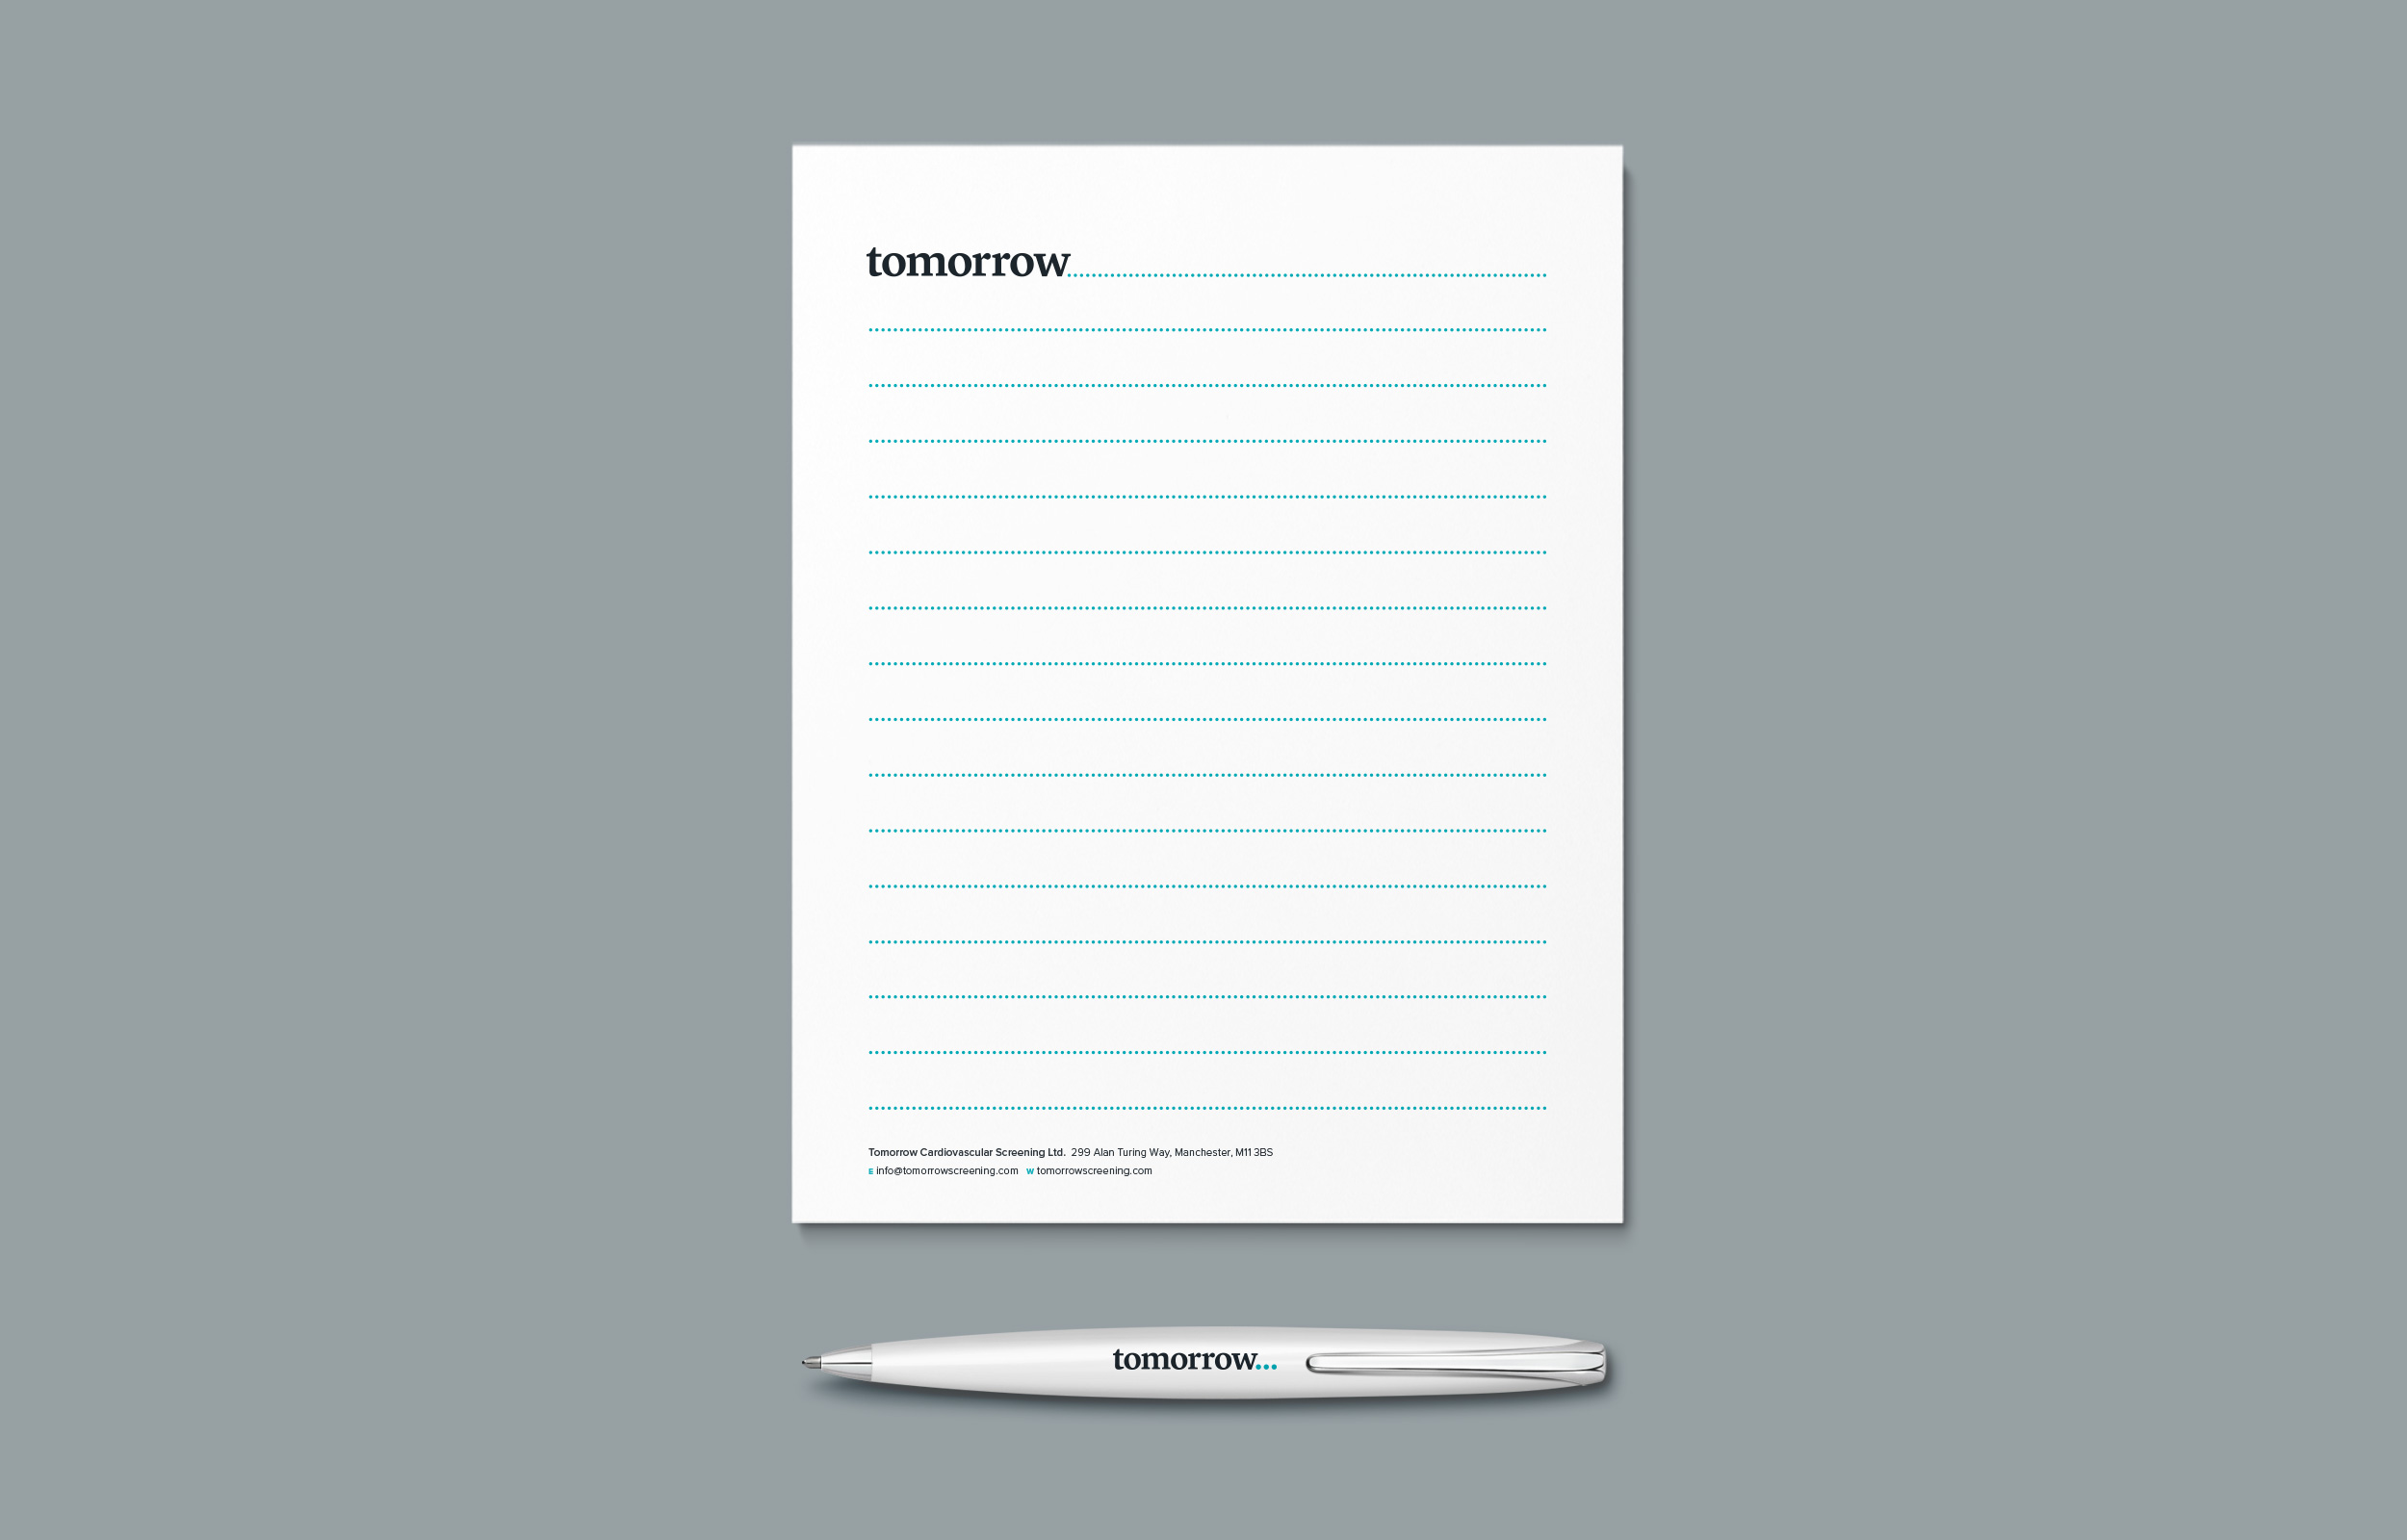 Tomorrow Screening note pads and pen – design by Ian Whalley